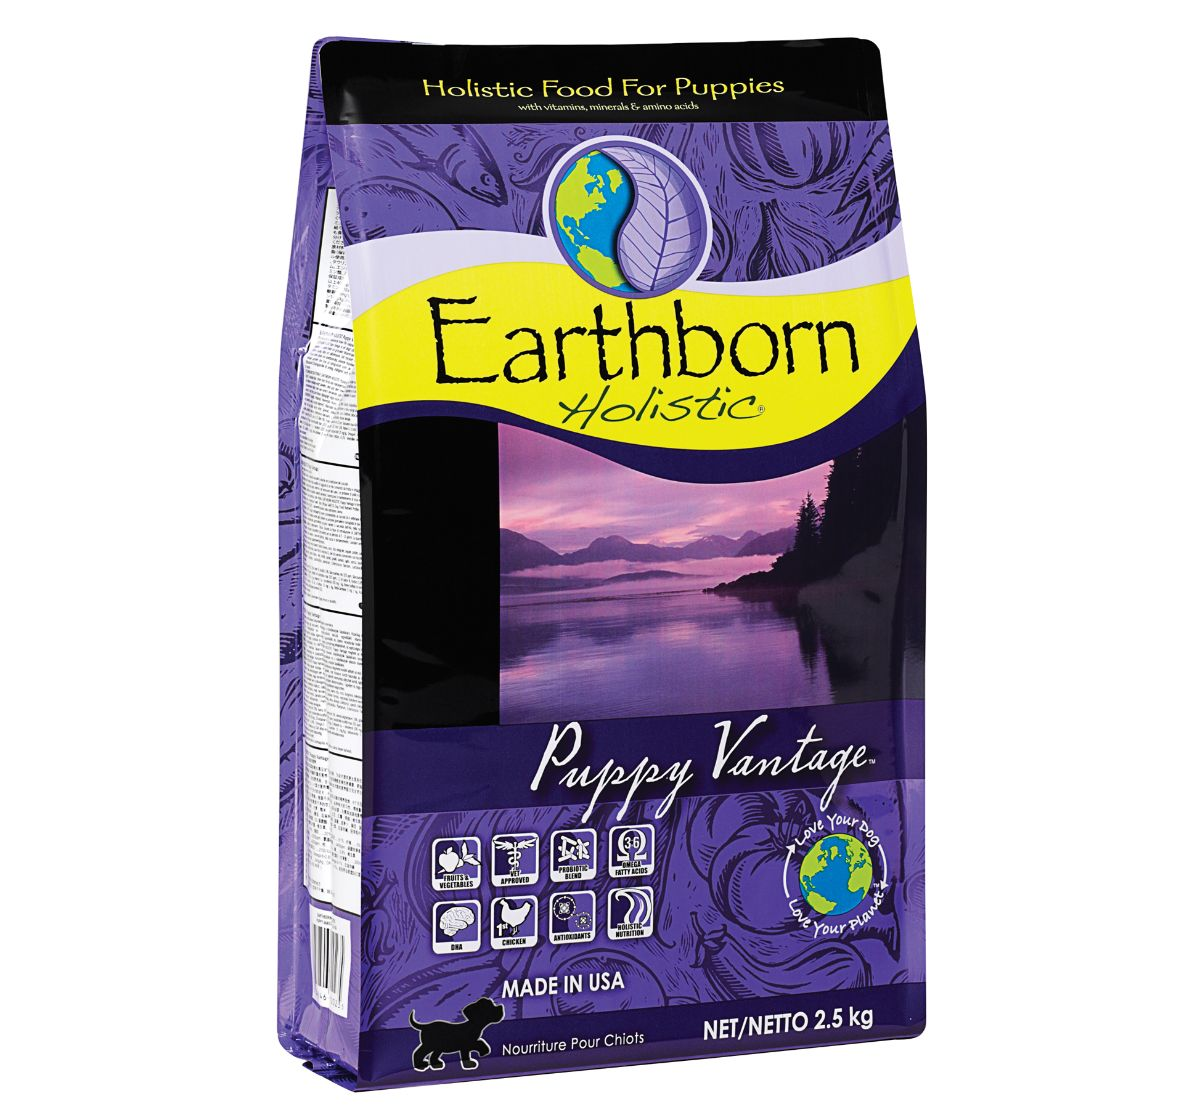 Earthborn Holistic Puppy Vantage Grain-Free Dry Dog Food - 2.5 kg